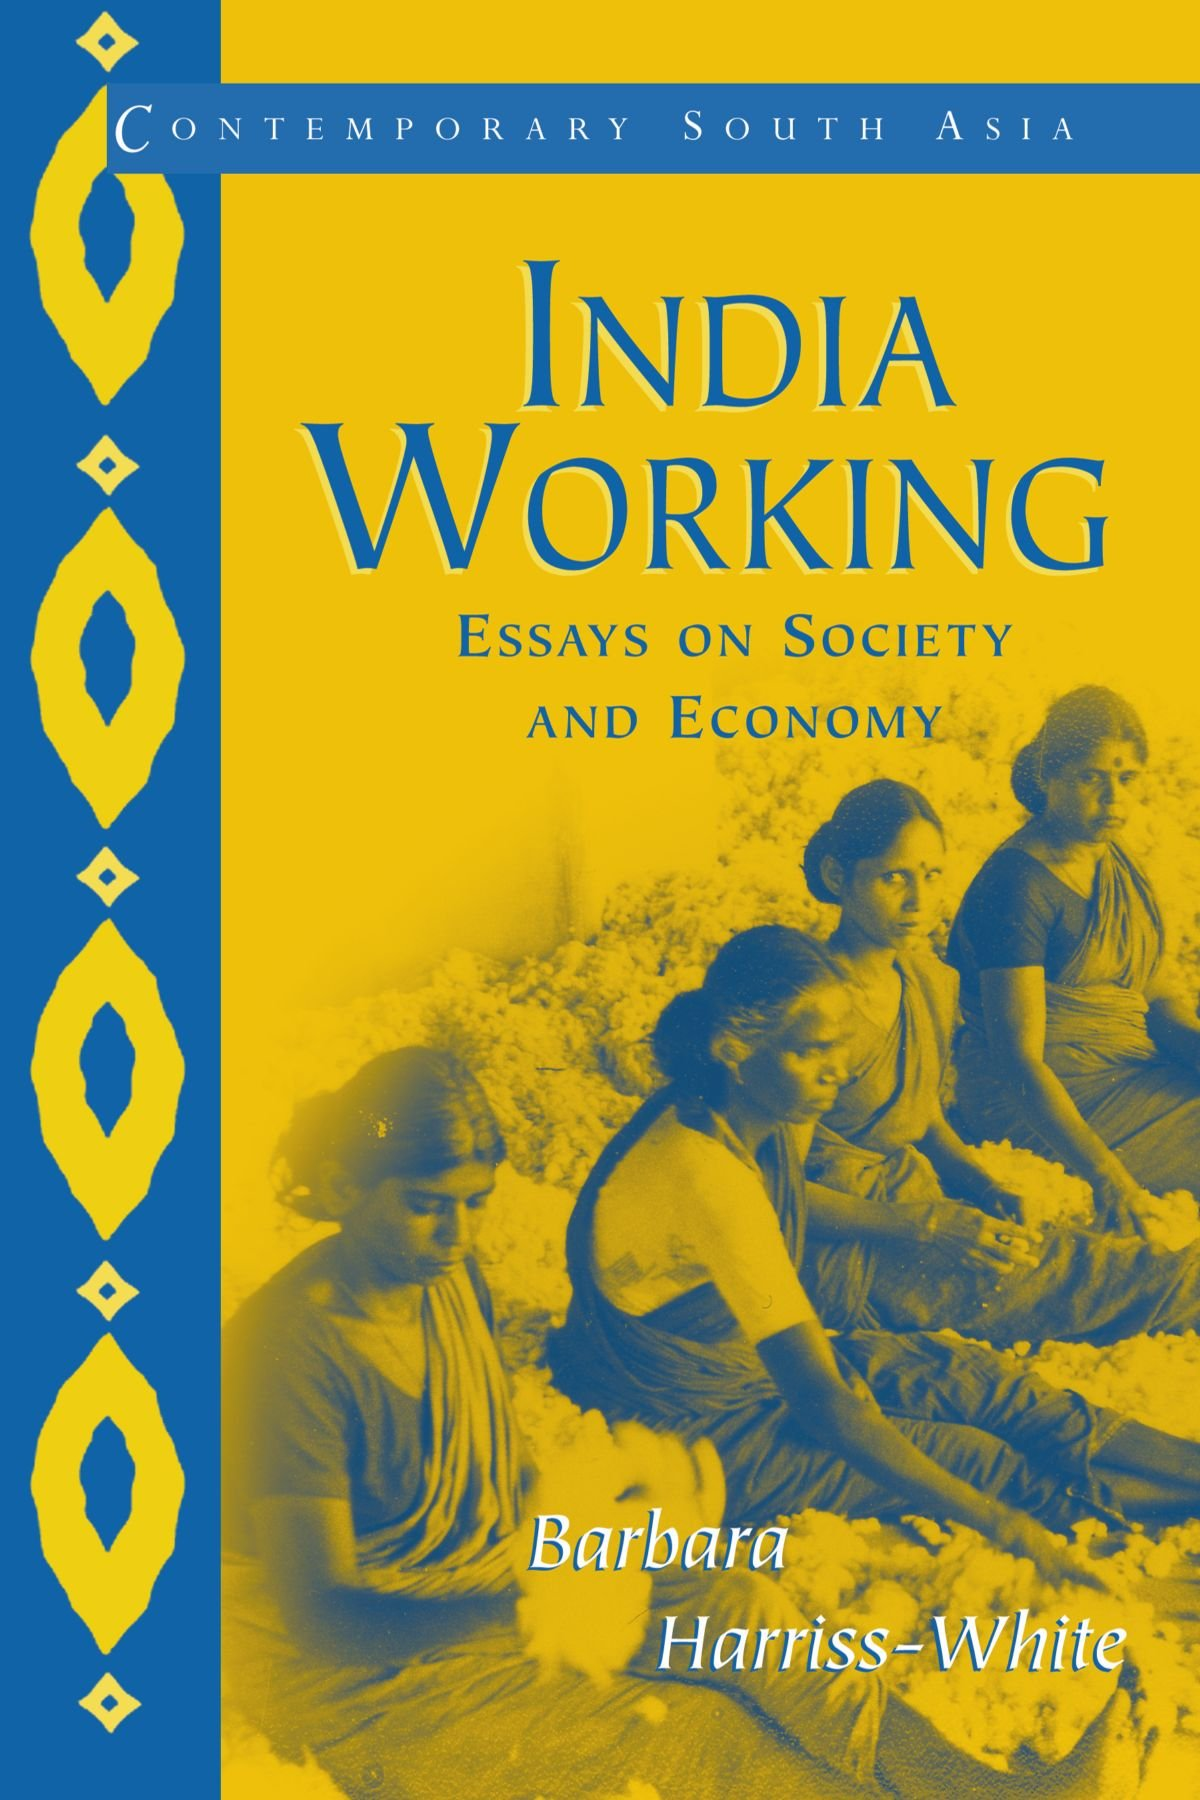 working essays on society and economy contemporary south   working essays on society and economy contemporary south asia barbara harriss white 9780521007634 com books